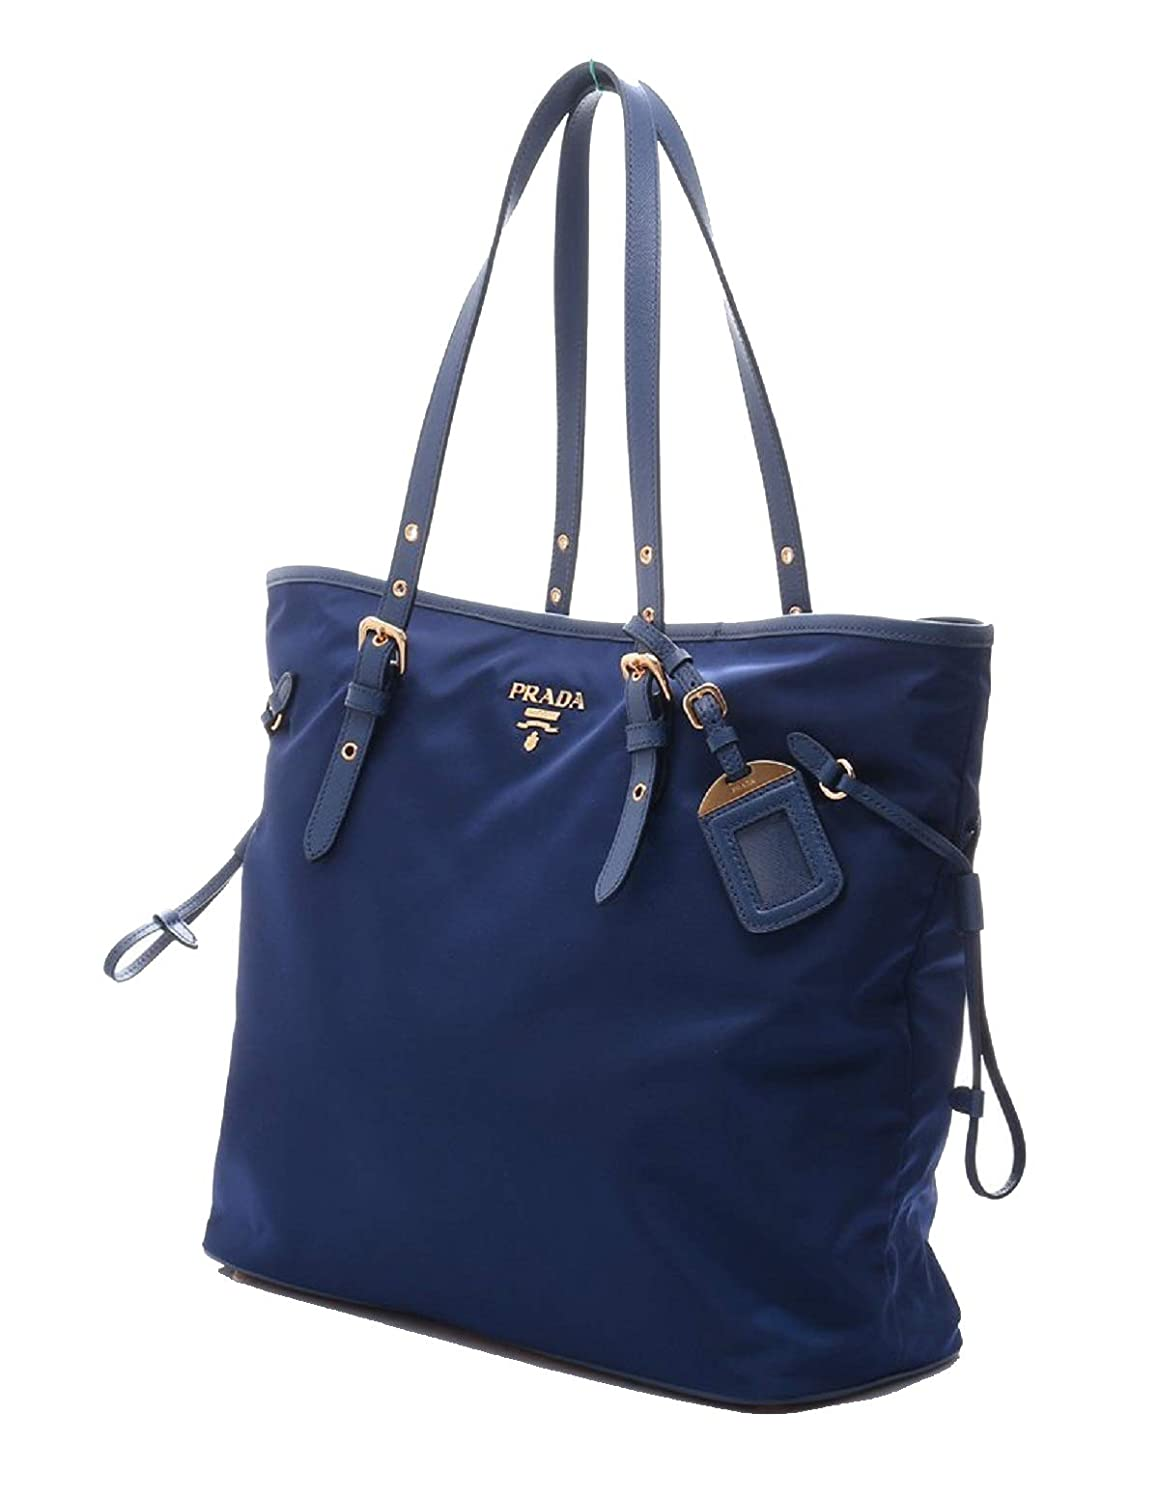 7e4fd90f6b8242 Amazon.com: Prada Tessuto Saffiano Royal Blue Nylon and Leather Trim  Shopping Tote Bag 1BG997: Shoes